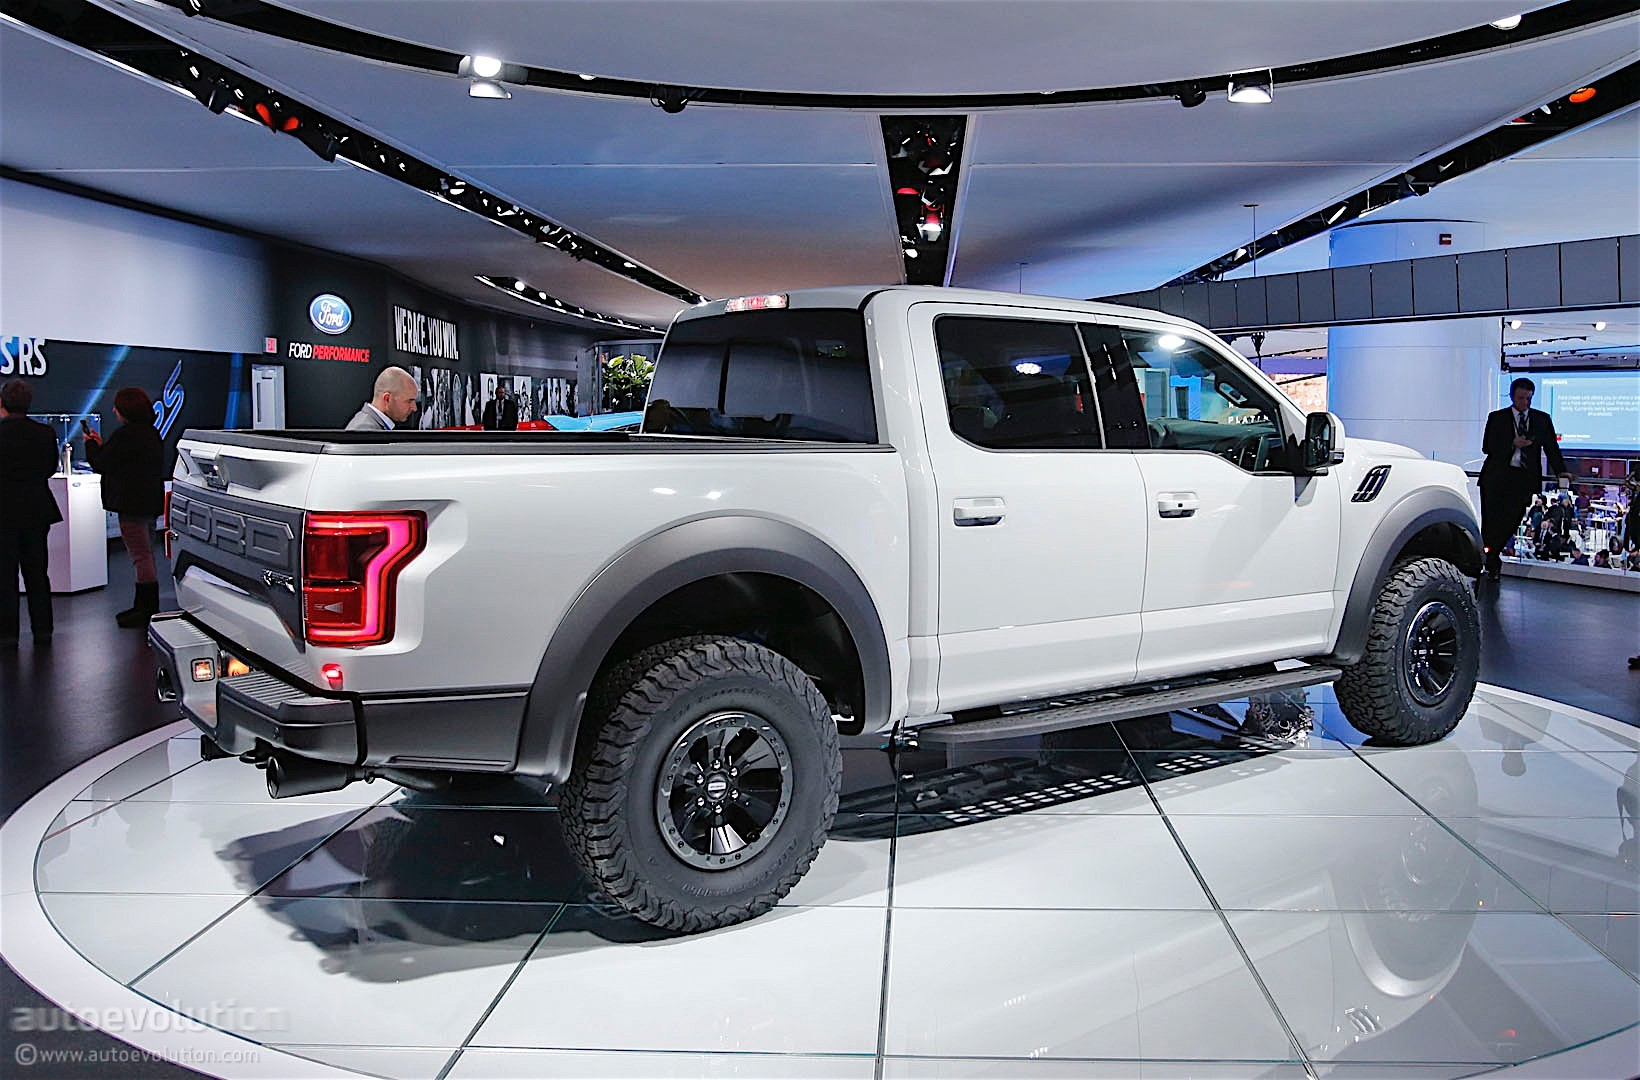 2017 Ford Mustang Ecoboost >> Ford F-150 Raptor Gets a SuperCrew Version in Detroit, Looks Awesome - autoevolution